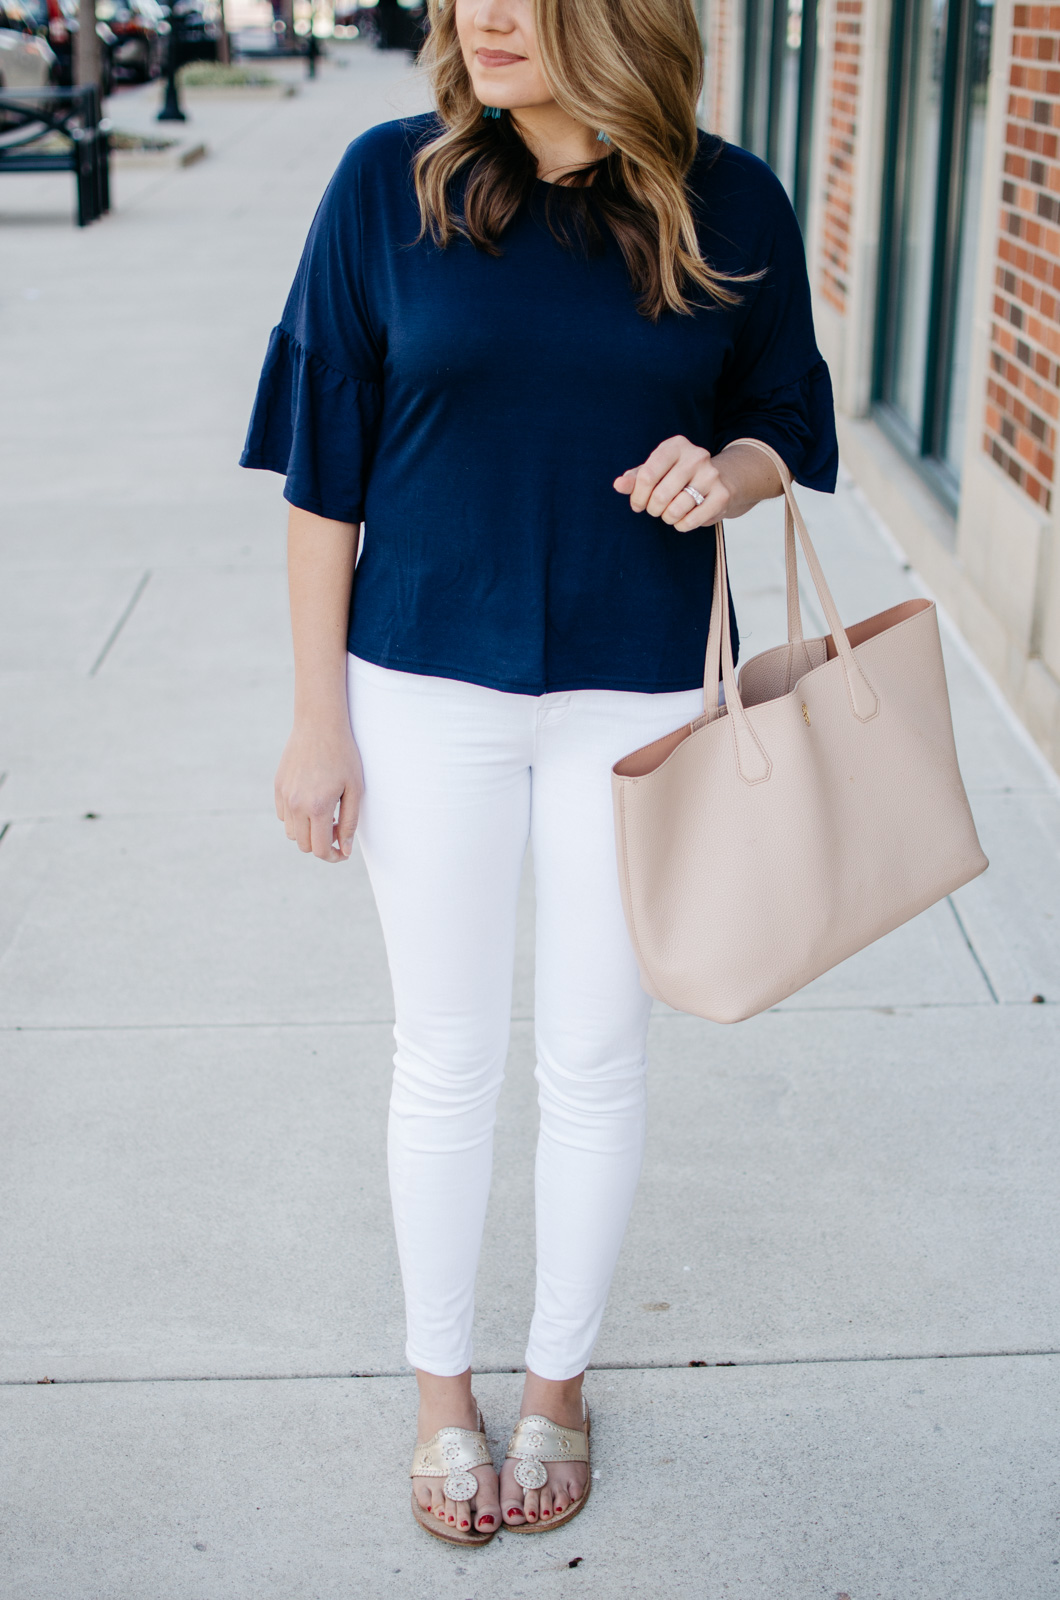 simple outfit for spring - Want more cute spring outfits? Head to bylaurenm.com!